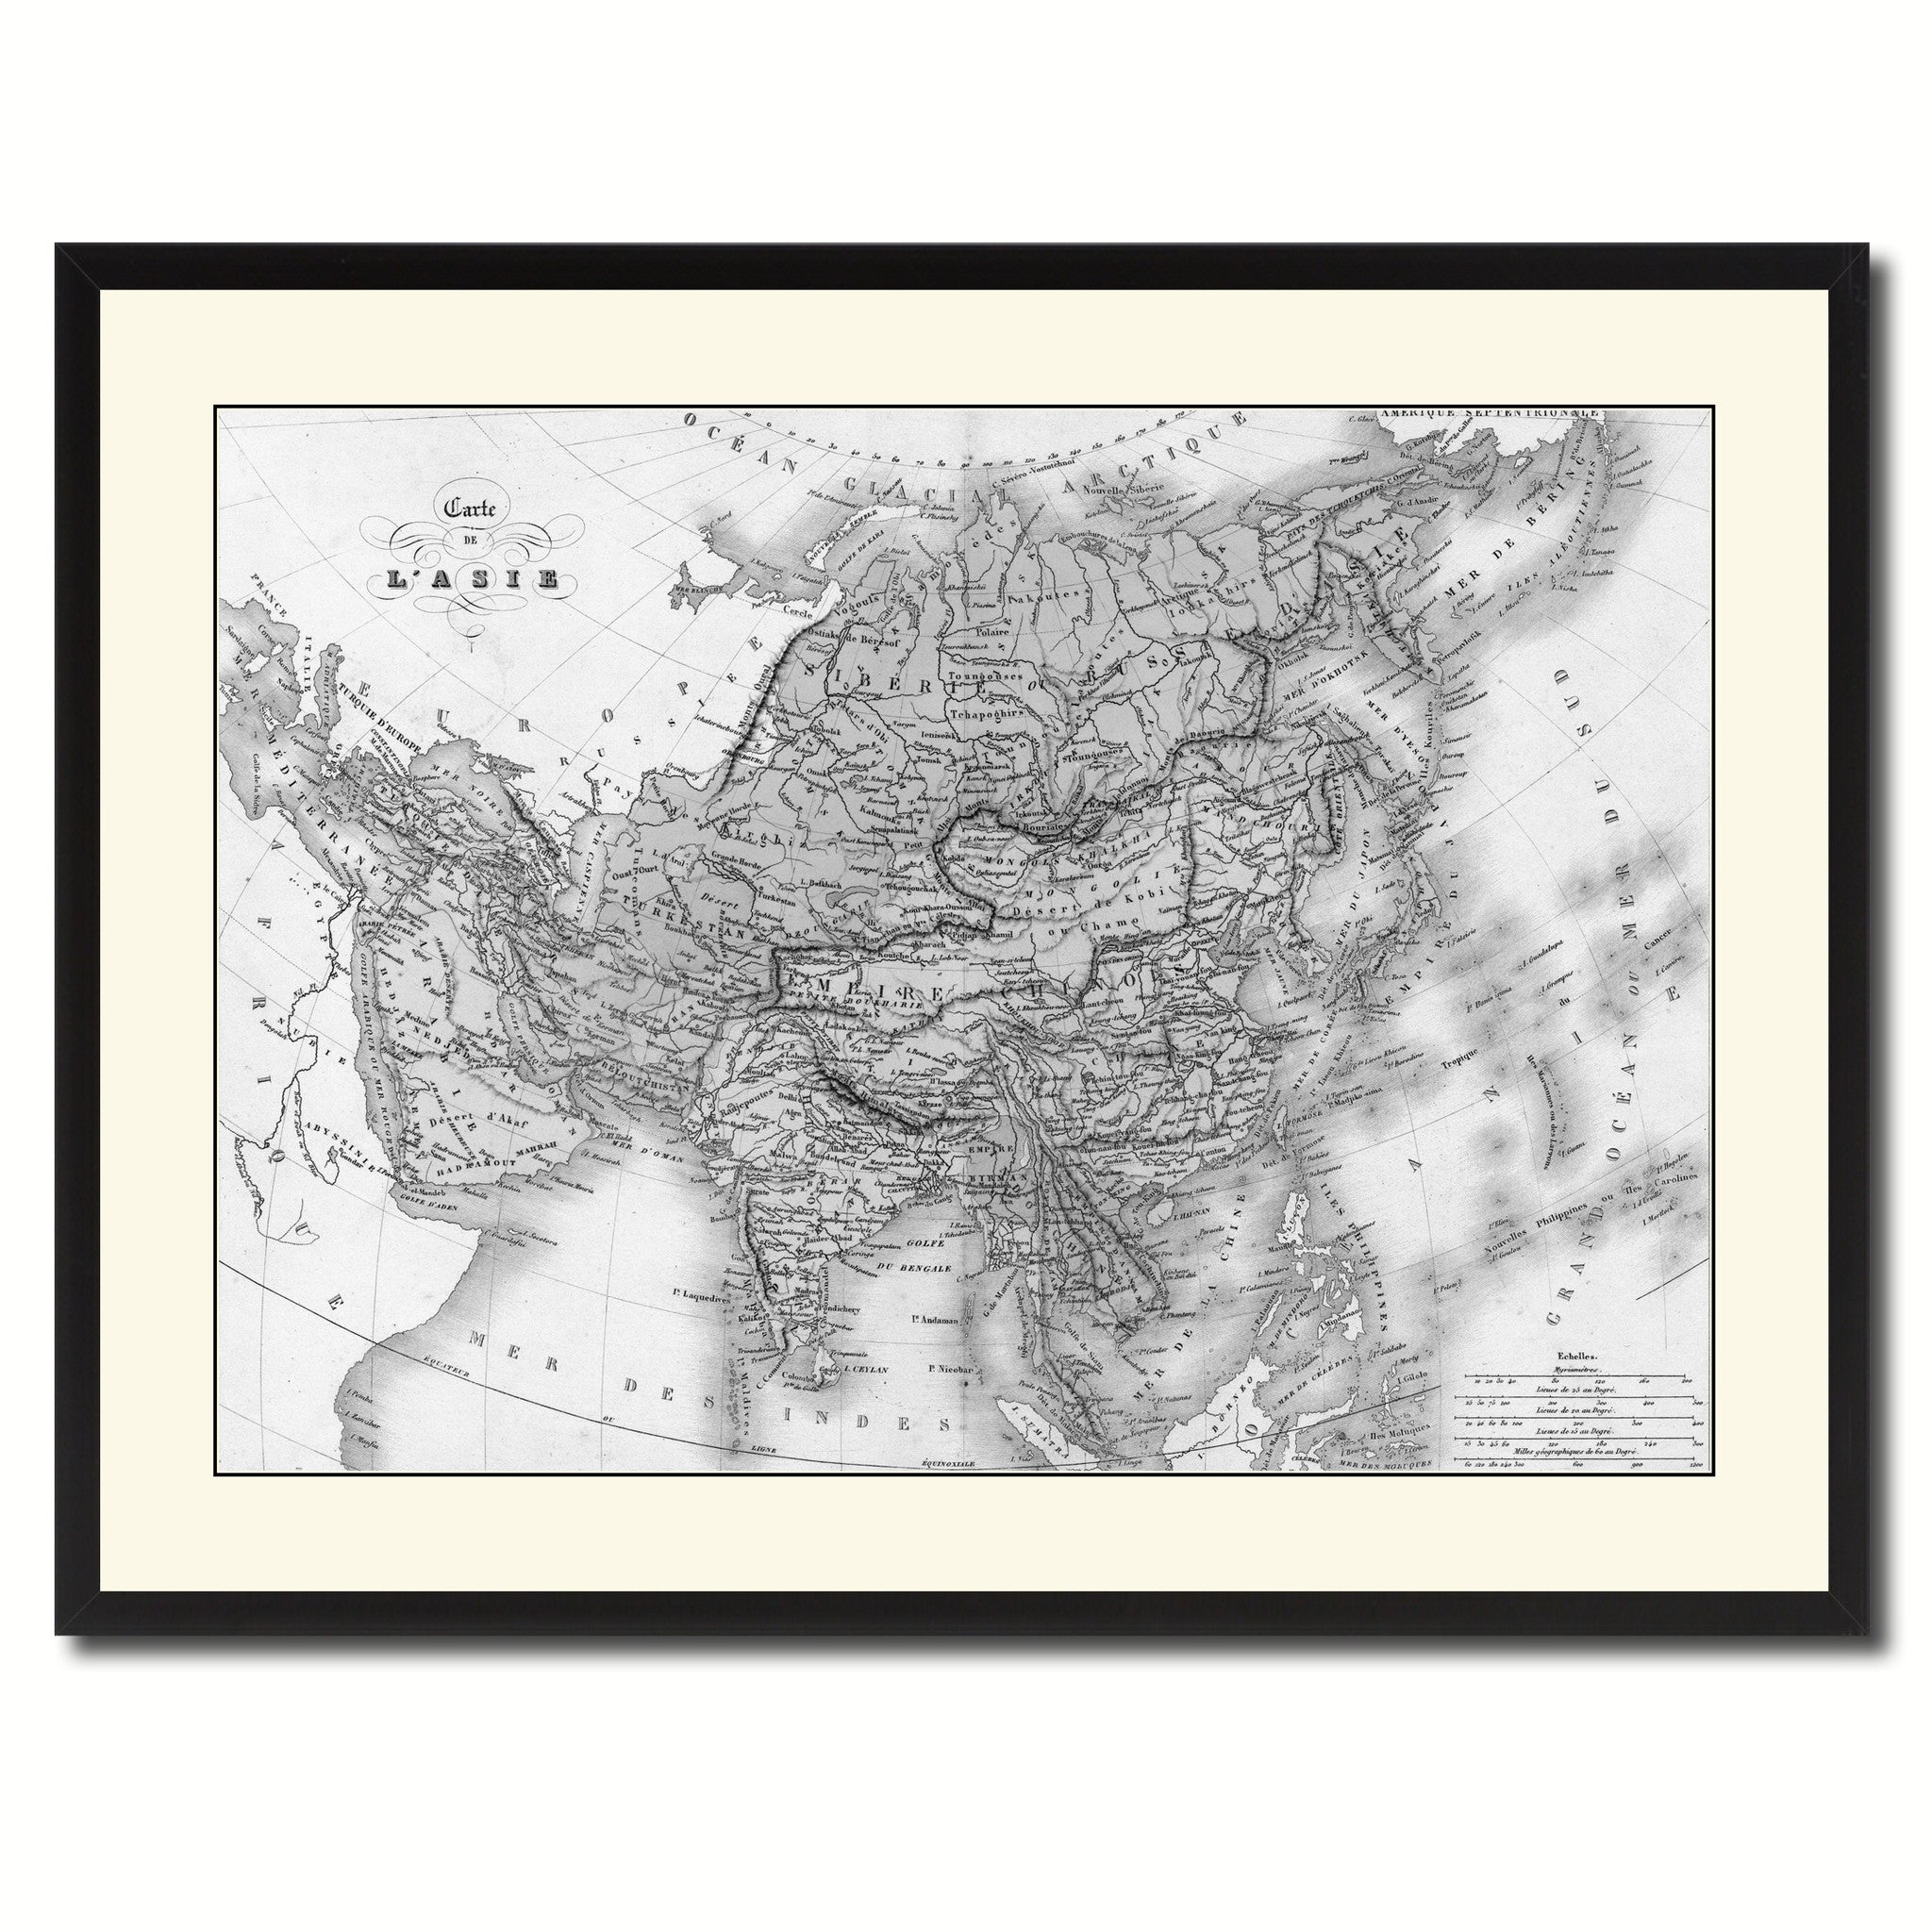 Asia Vintage B&W Map Canvas Print, Picture Frame Home Decor Wall Art Gift Ideas